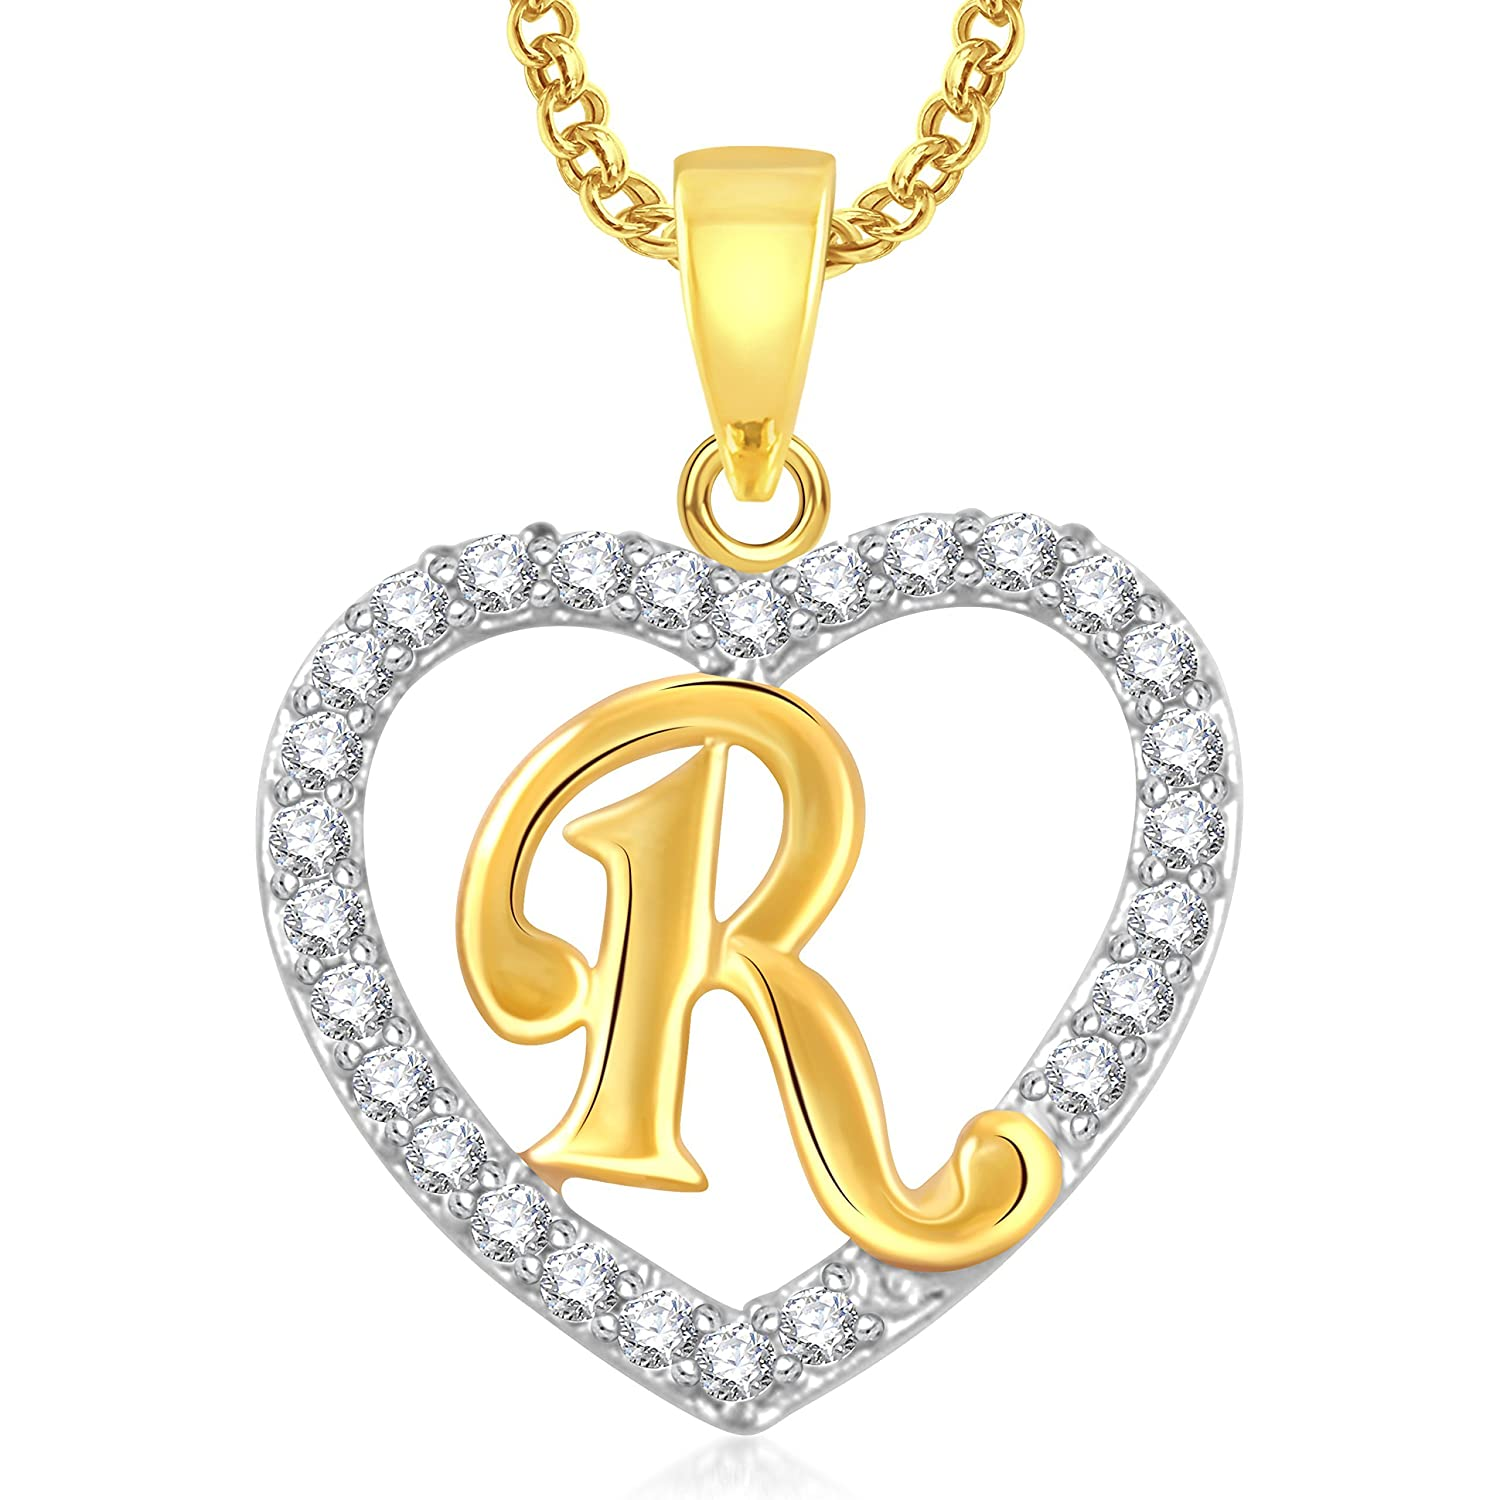 youtube queen pendant tanishq diamond jewellery hearts watch collection of